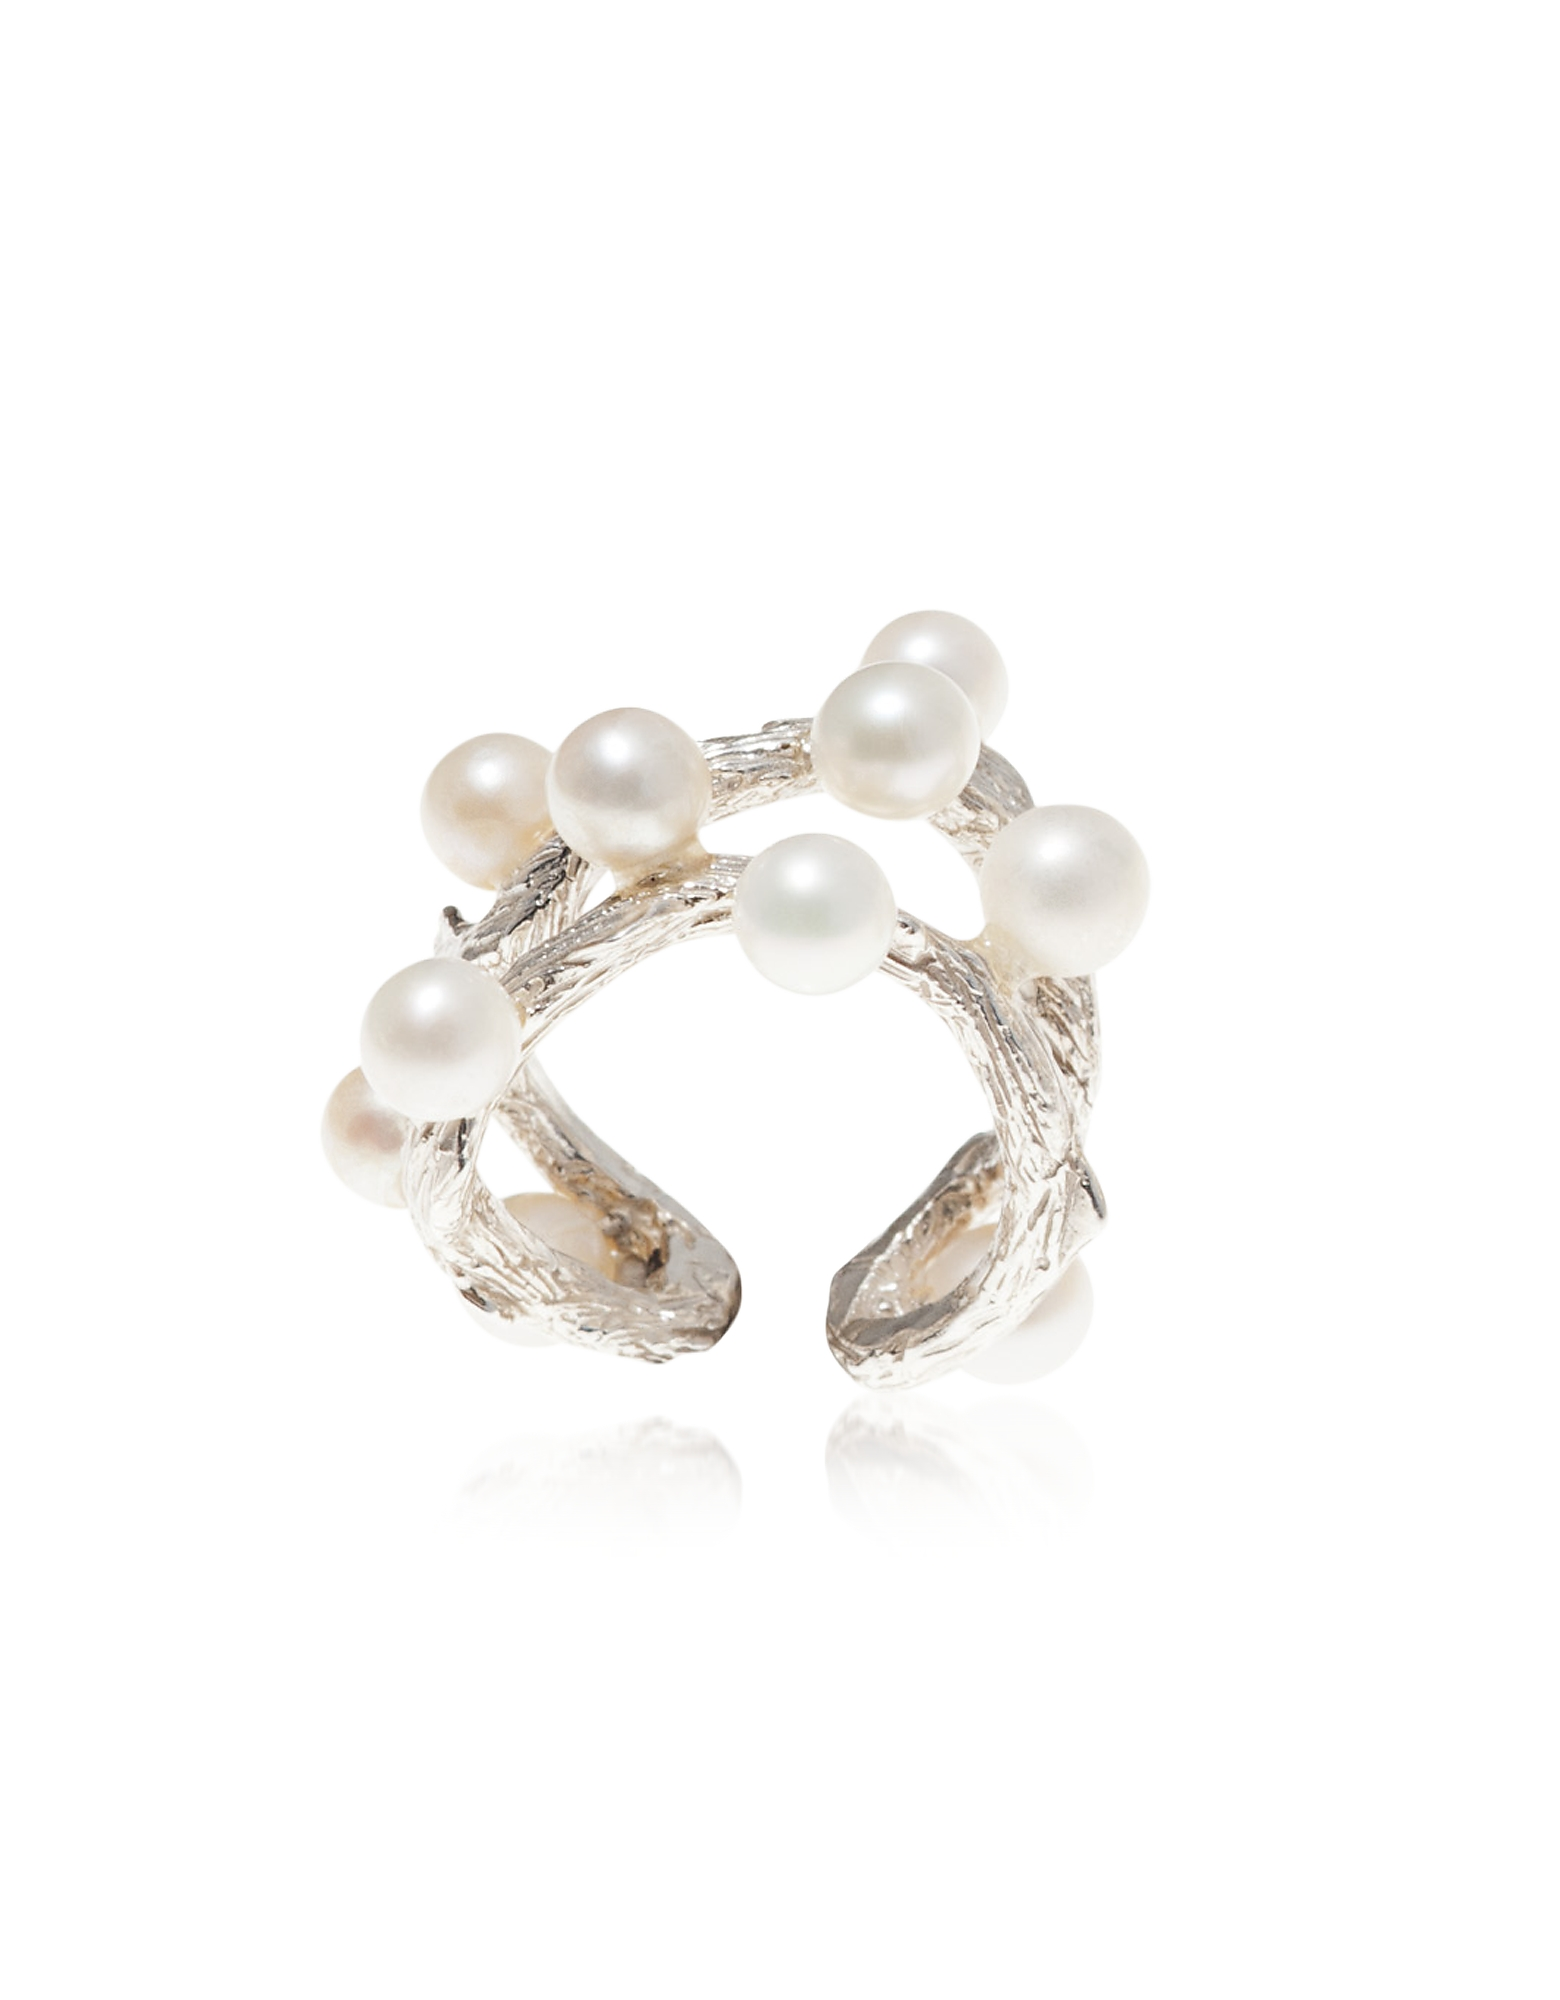 Thorny Branch Bronze Ring w/ Pearls